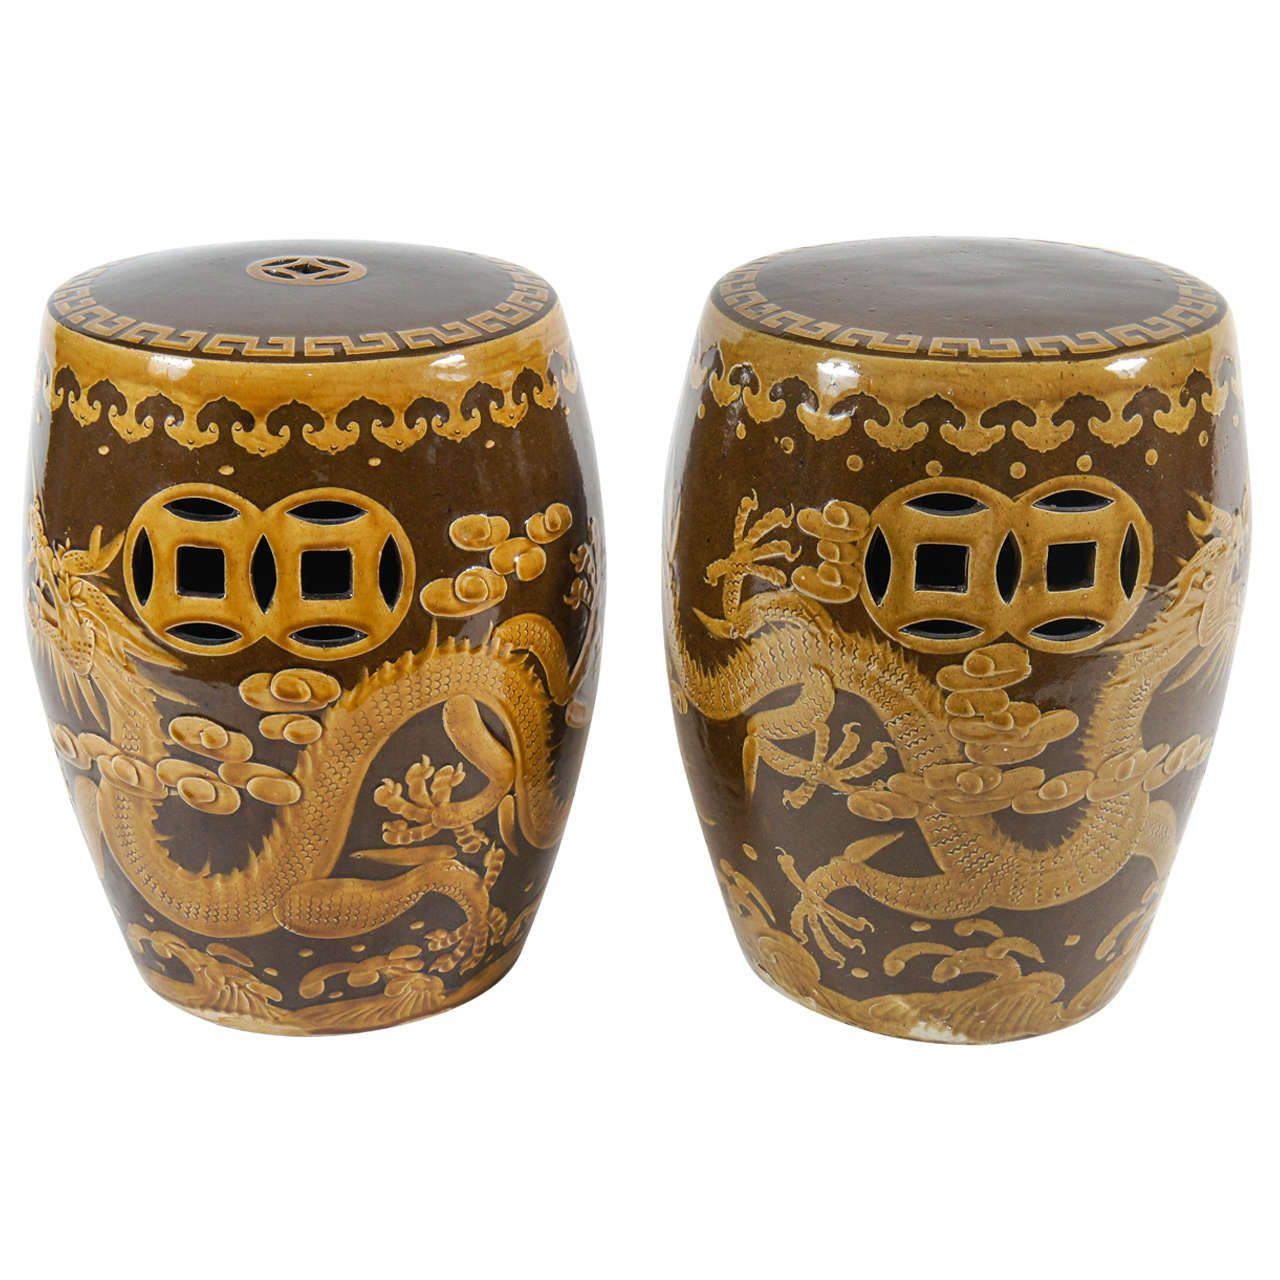 Near Pair of Vintage Chinese Pottery Dragon Motif Garden Seats or Stools | From a unique collection of antique and modern garden furniture at https://www.1stdibs.com/furniture/building-garden/garden-furniture/